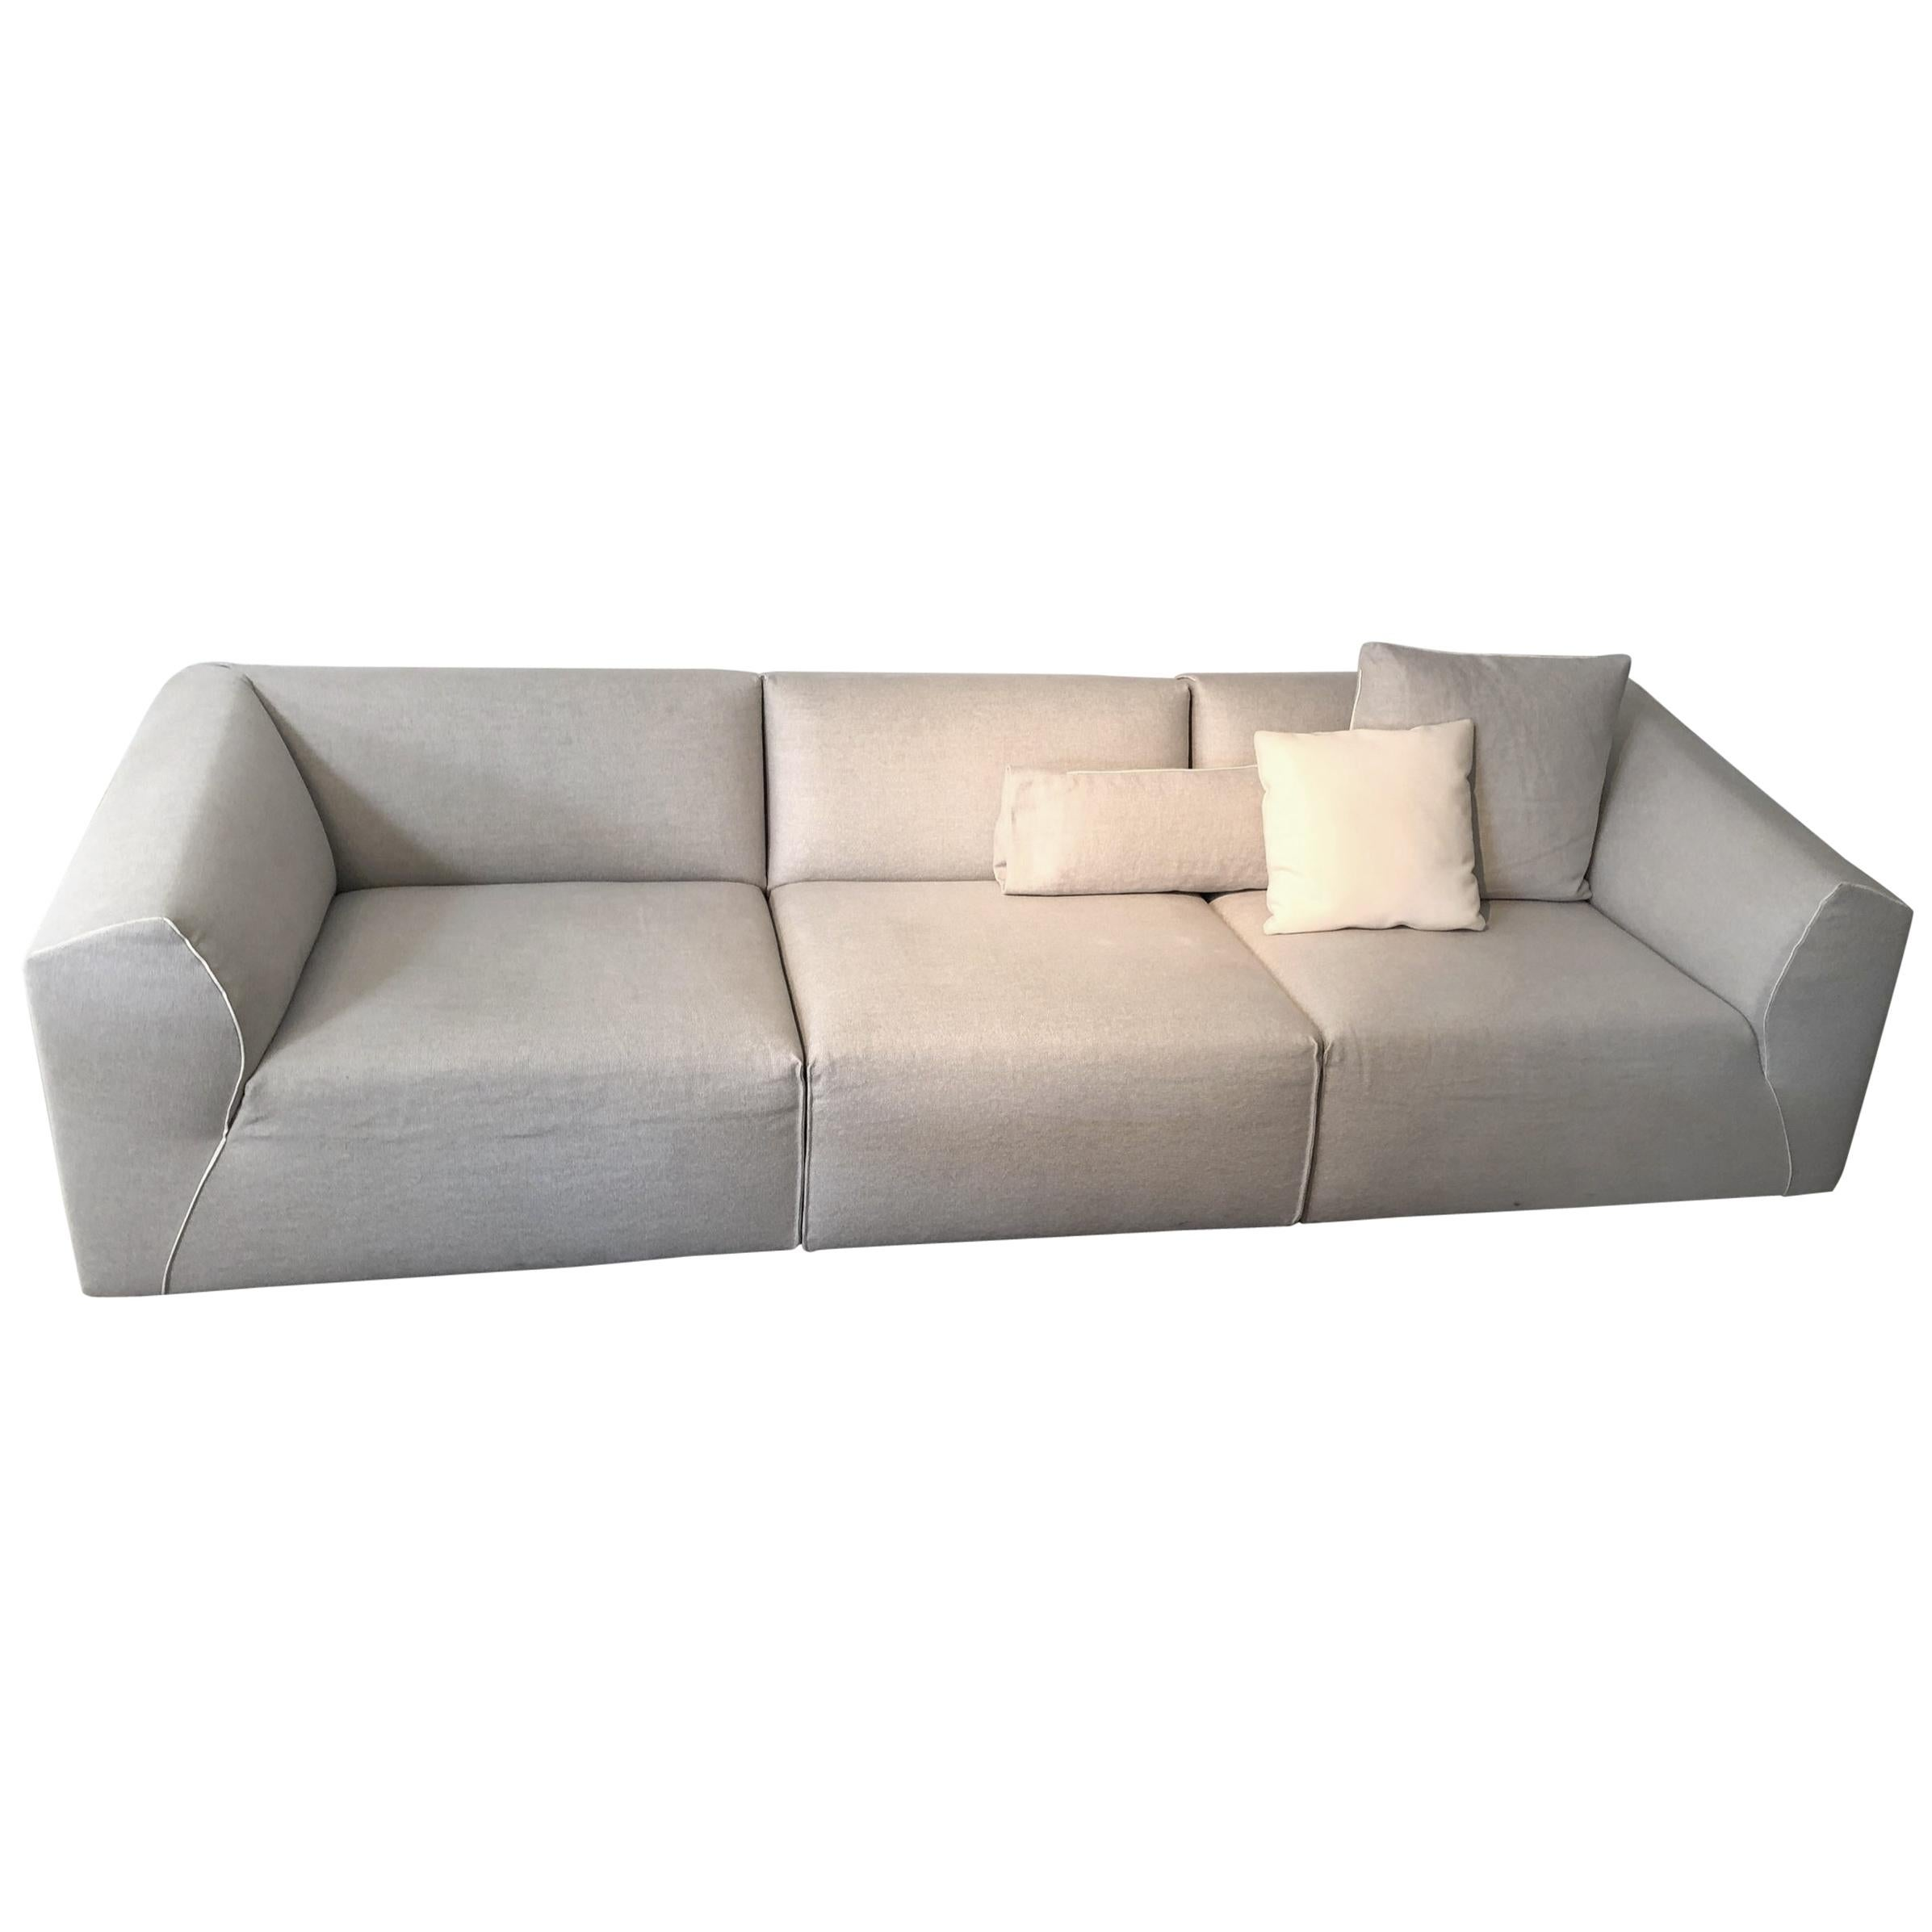 3 Seat Modular Sofa Couch And Ottoman Light Grey And White Piping By MDF  Italia